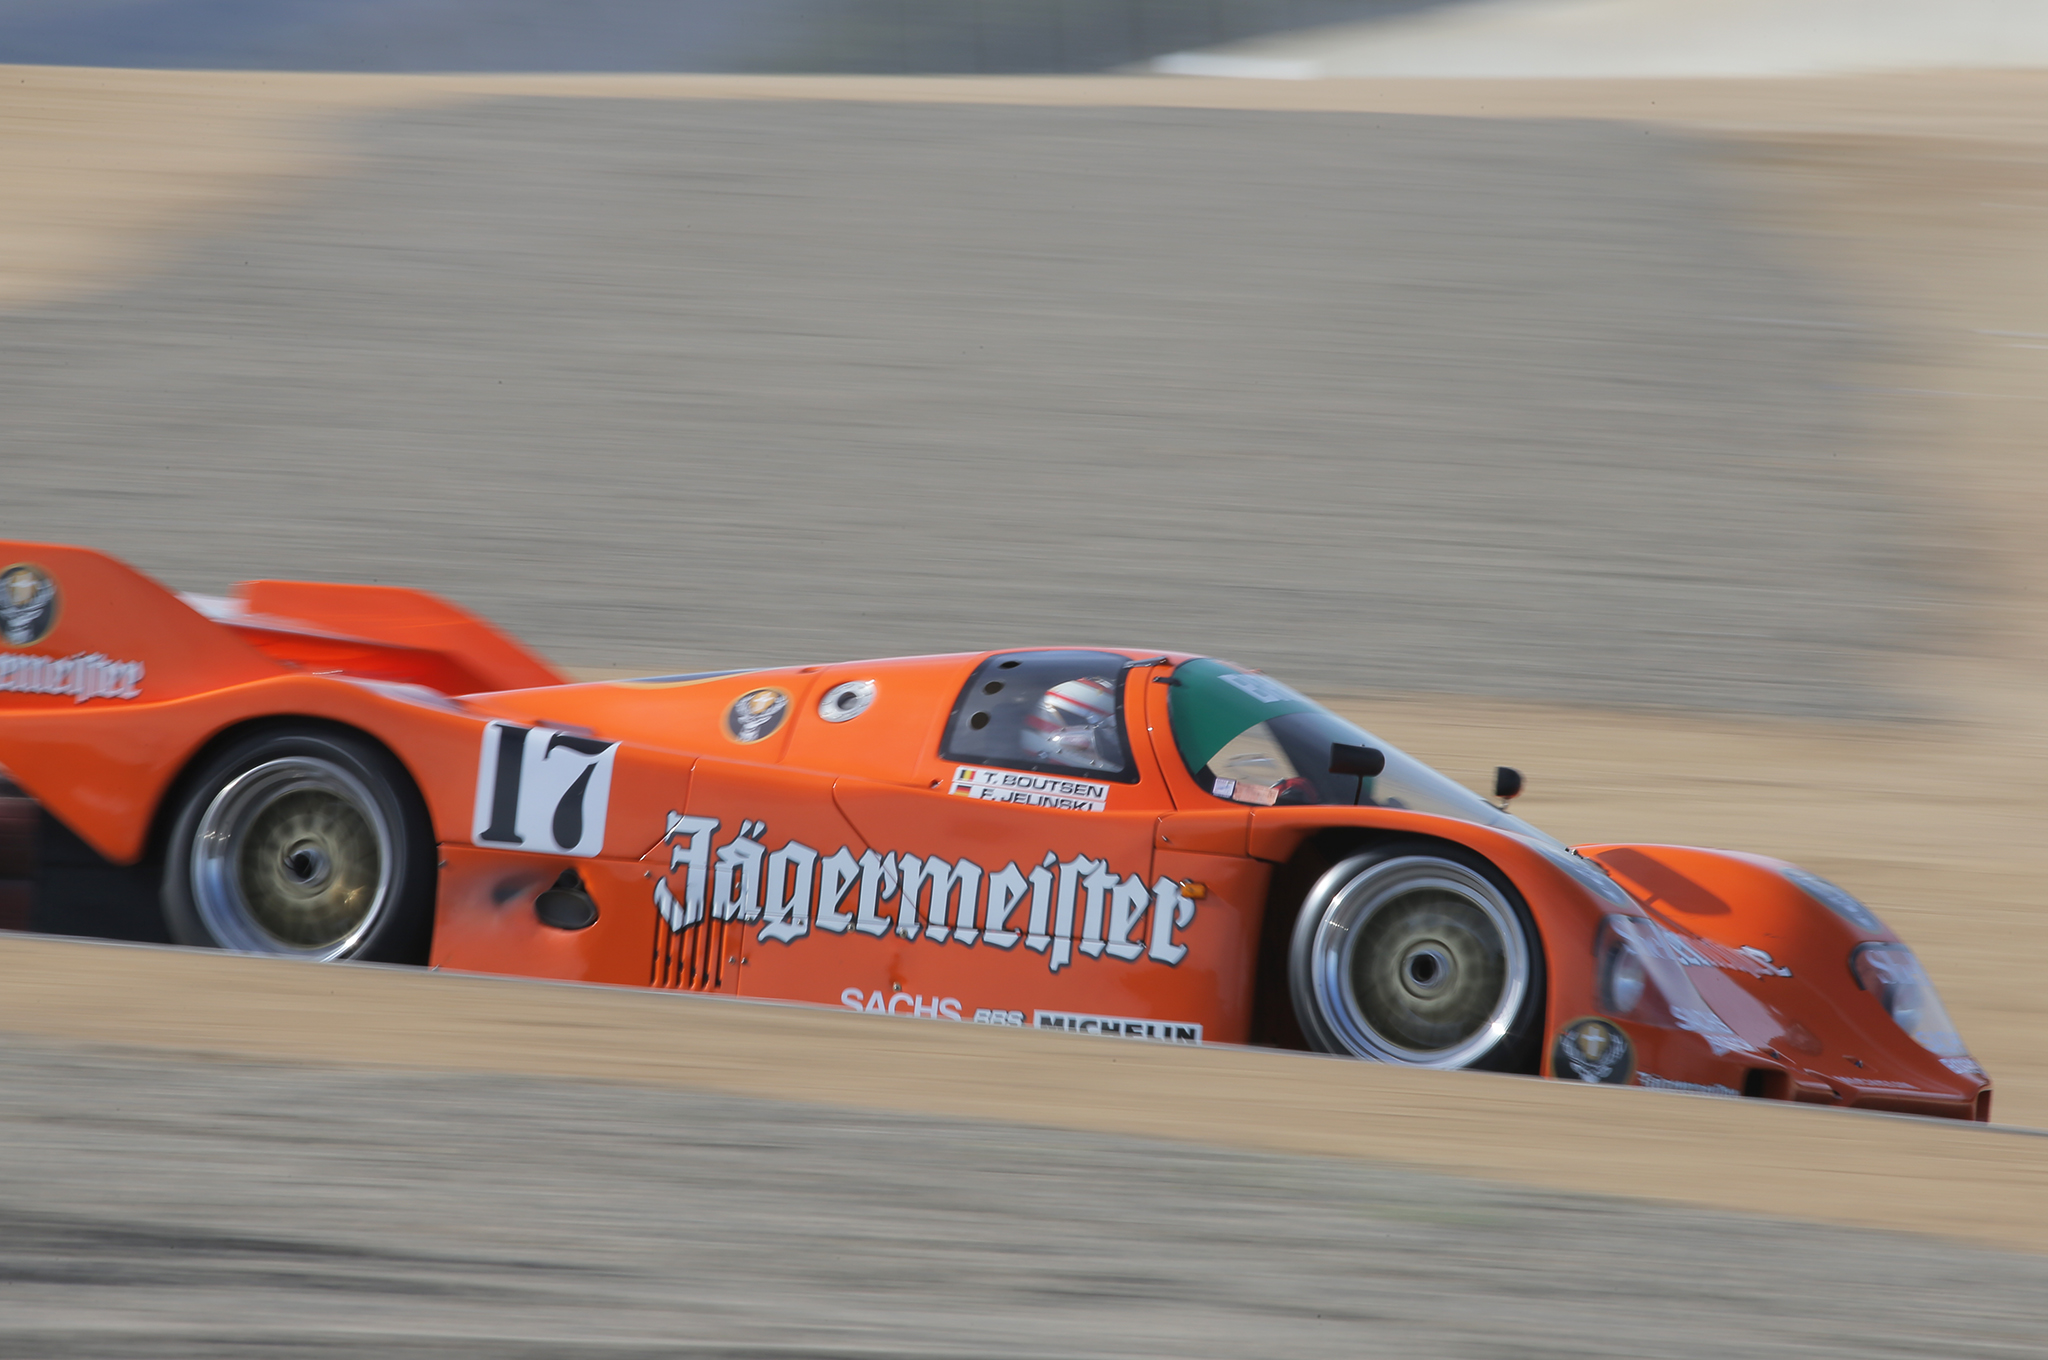 12. A 1986 Porsche 962 with the famous Jagermeister livery.